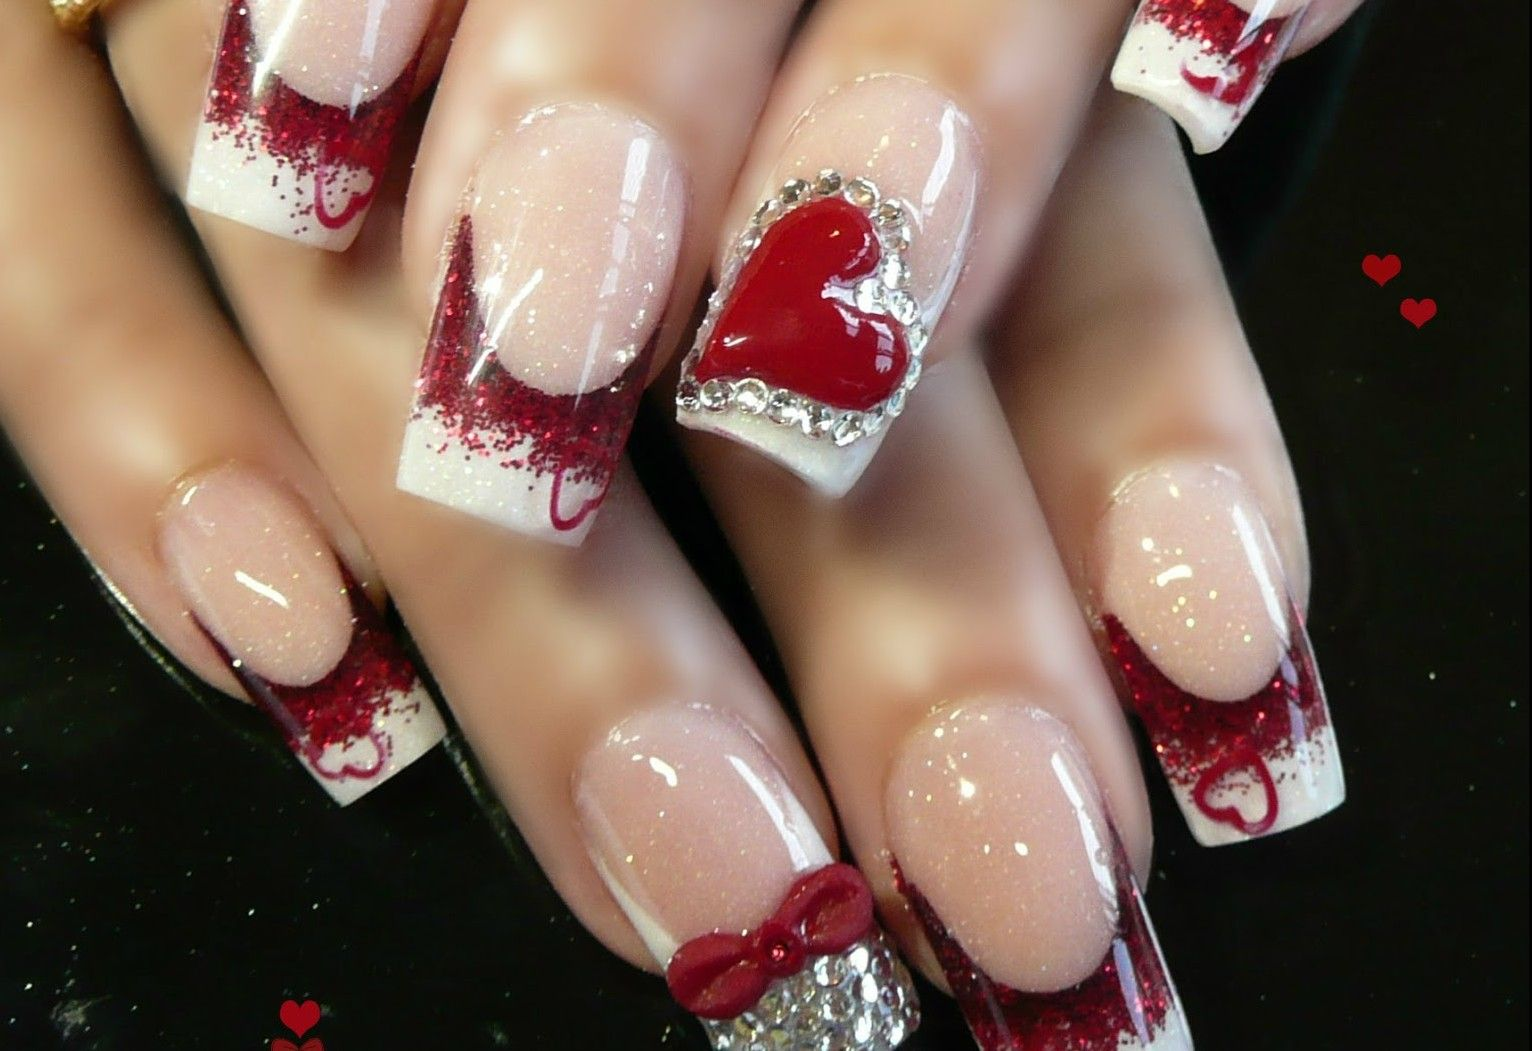 Shape and color fade   Nails   Pinterest   Acrylic nail designs ...